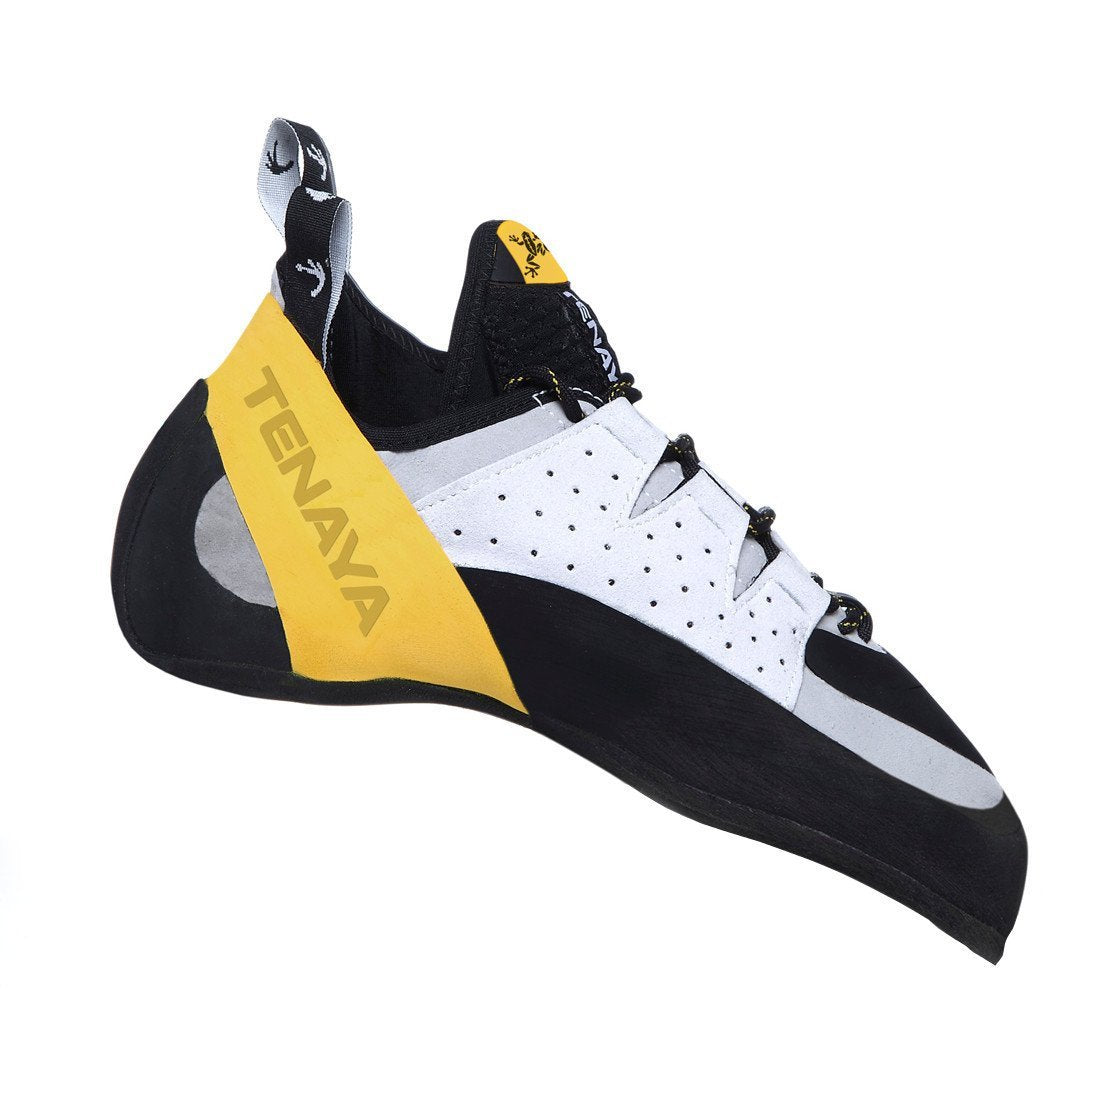 Tenaya Tarifa climbing shoe black, yellow and white